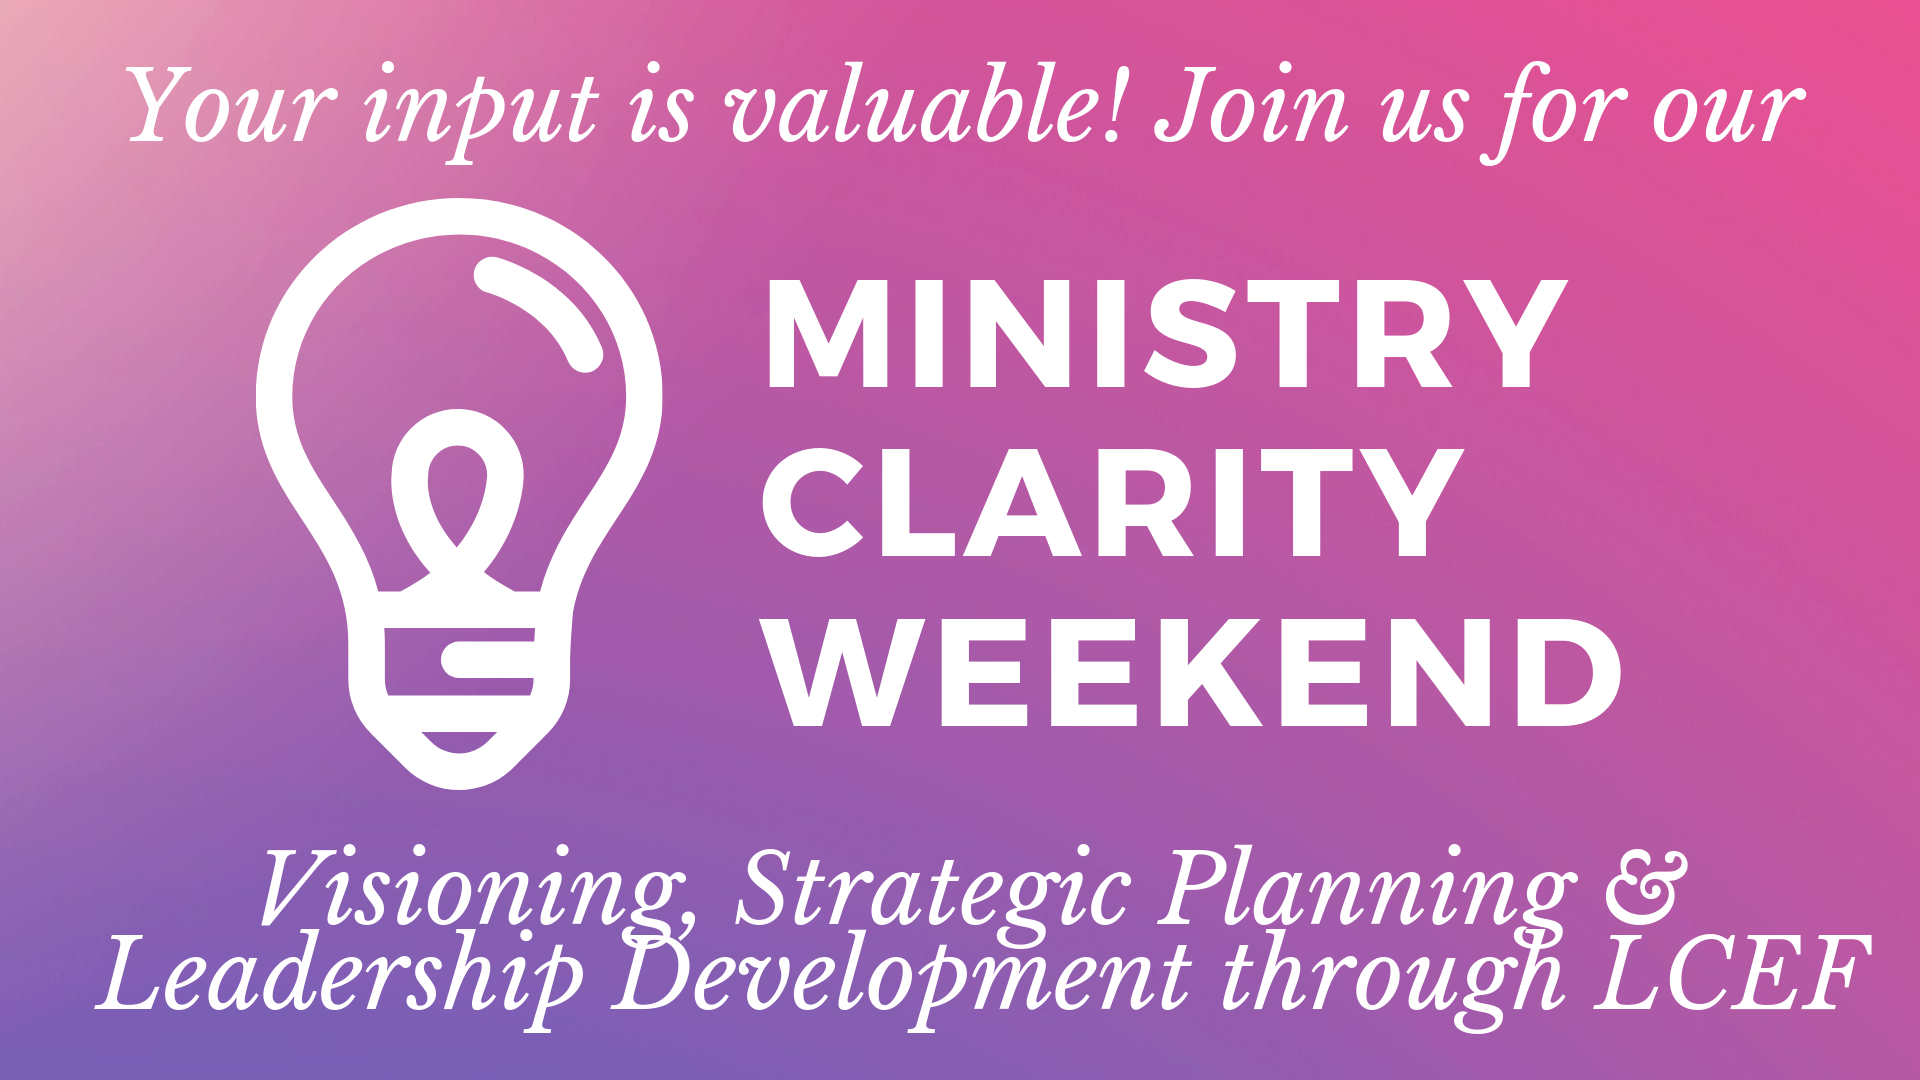 """WHAT IS MINISTRY CLARITY?  Ministry Clarity is an opportunity for us to examine and refocus our ministries at Bethany, guided by a team from the Lutheran Church Extension Fund. We know """"the purpose"""" of the Lord's Church on earth, but we'll be considering how that broader mission of the Church might be better implemented at Bethany? That is, how might our current ministries, activities, and events be altered to better align with our Lord's mission? The end goal is for the congregation's leadership to have clarity on our path and purpose as decisions are made, as well as for the congregation to have renewed zeal and support for our church's many ministry opportunities.    WHEN ARE THE SESSIONS? WHAT WILL THE SCHEDULE LOOK LIKE?  Your input is important! Please attend one of our Ministry Clarity Weekend brainstorming sessions (Sun. Nov. 3 @ 10:15 am or Mon. Nov. 4 @ 6:30 pm). Click here to register:  https://bethanylcs.org/ministry-clarity-weekend.  Childcare and food will be provided for both sessions!    ·  Session 1:  Sunday, Nov. 3. We'll have  ONE  Divine Service at 9:00 am, followed by brief Fellowship with pastries at 10:15 in the gym, and then we'll go straight into our one-hour brainstorming session. There WILL be Sunday School at 10:30, and the nursery will be staffed. (We'll be done by 11:30AM!)  ·  Session 2 : Monday Nov. 4. A light dinner for the whole family will be provided in the gym starting at 6:30 pm until 7 pm. From there we'll begin our one-hour brainstorming session in the gym. (We'll be done by 8PM!)    WHO SHOULD ATTEND?  We're asking input from any Bethany Church and/or School Family ages Jr. High and older. Childcare will be available for anyone ages 5th grade and younger."""